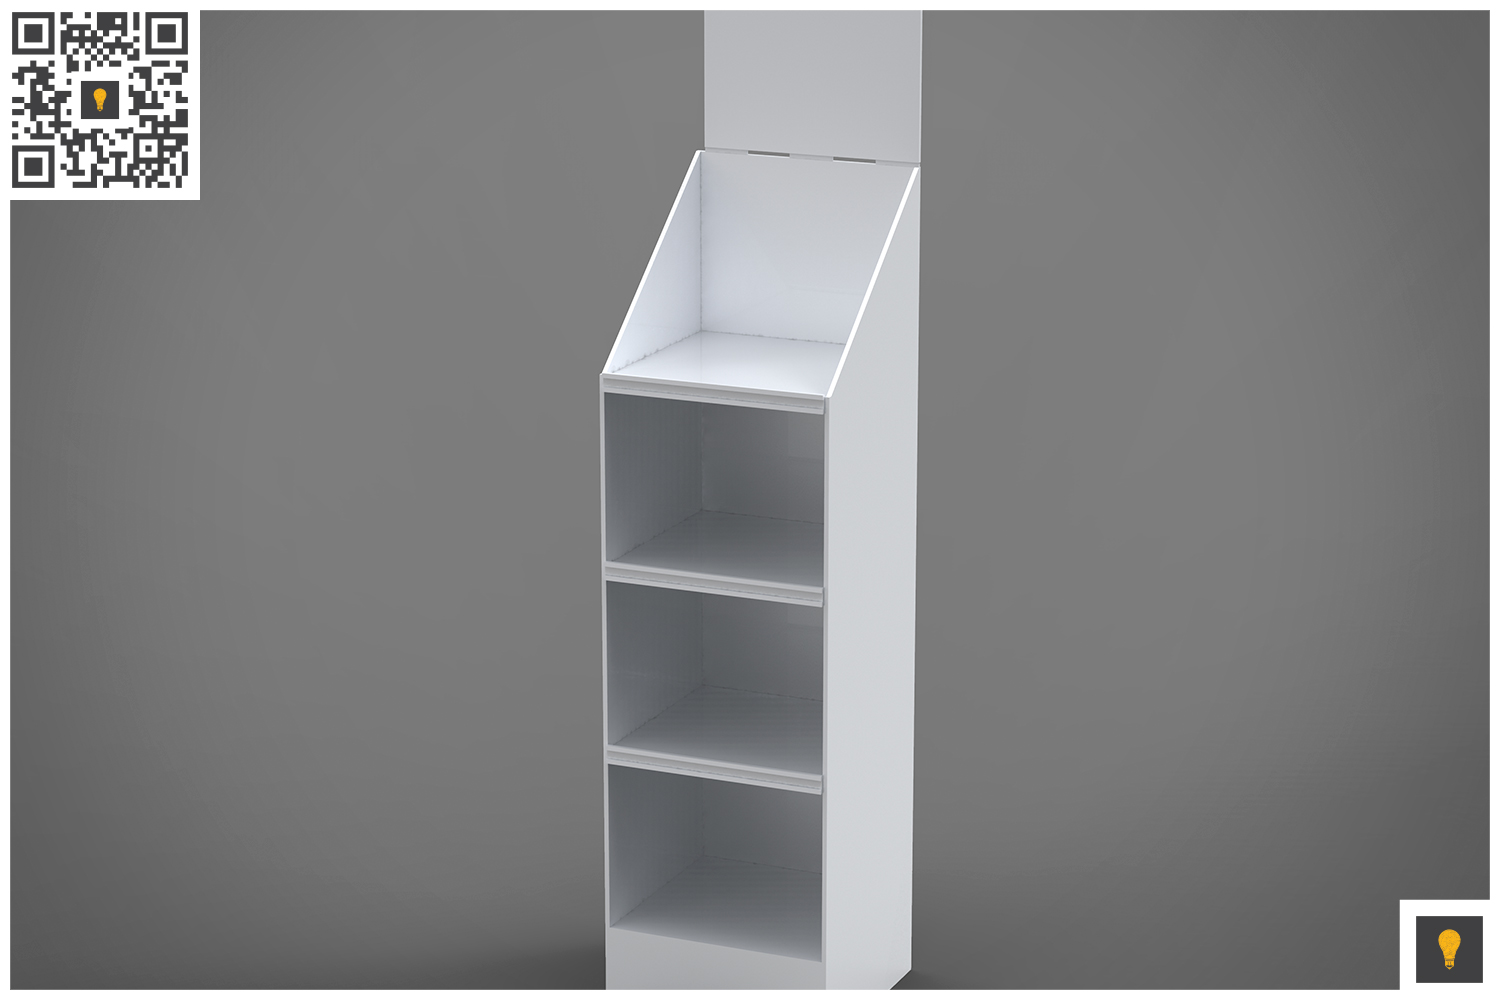 Promotional Store Shelf Stand 3D Render example image 3